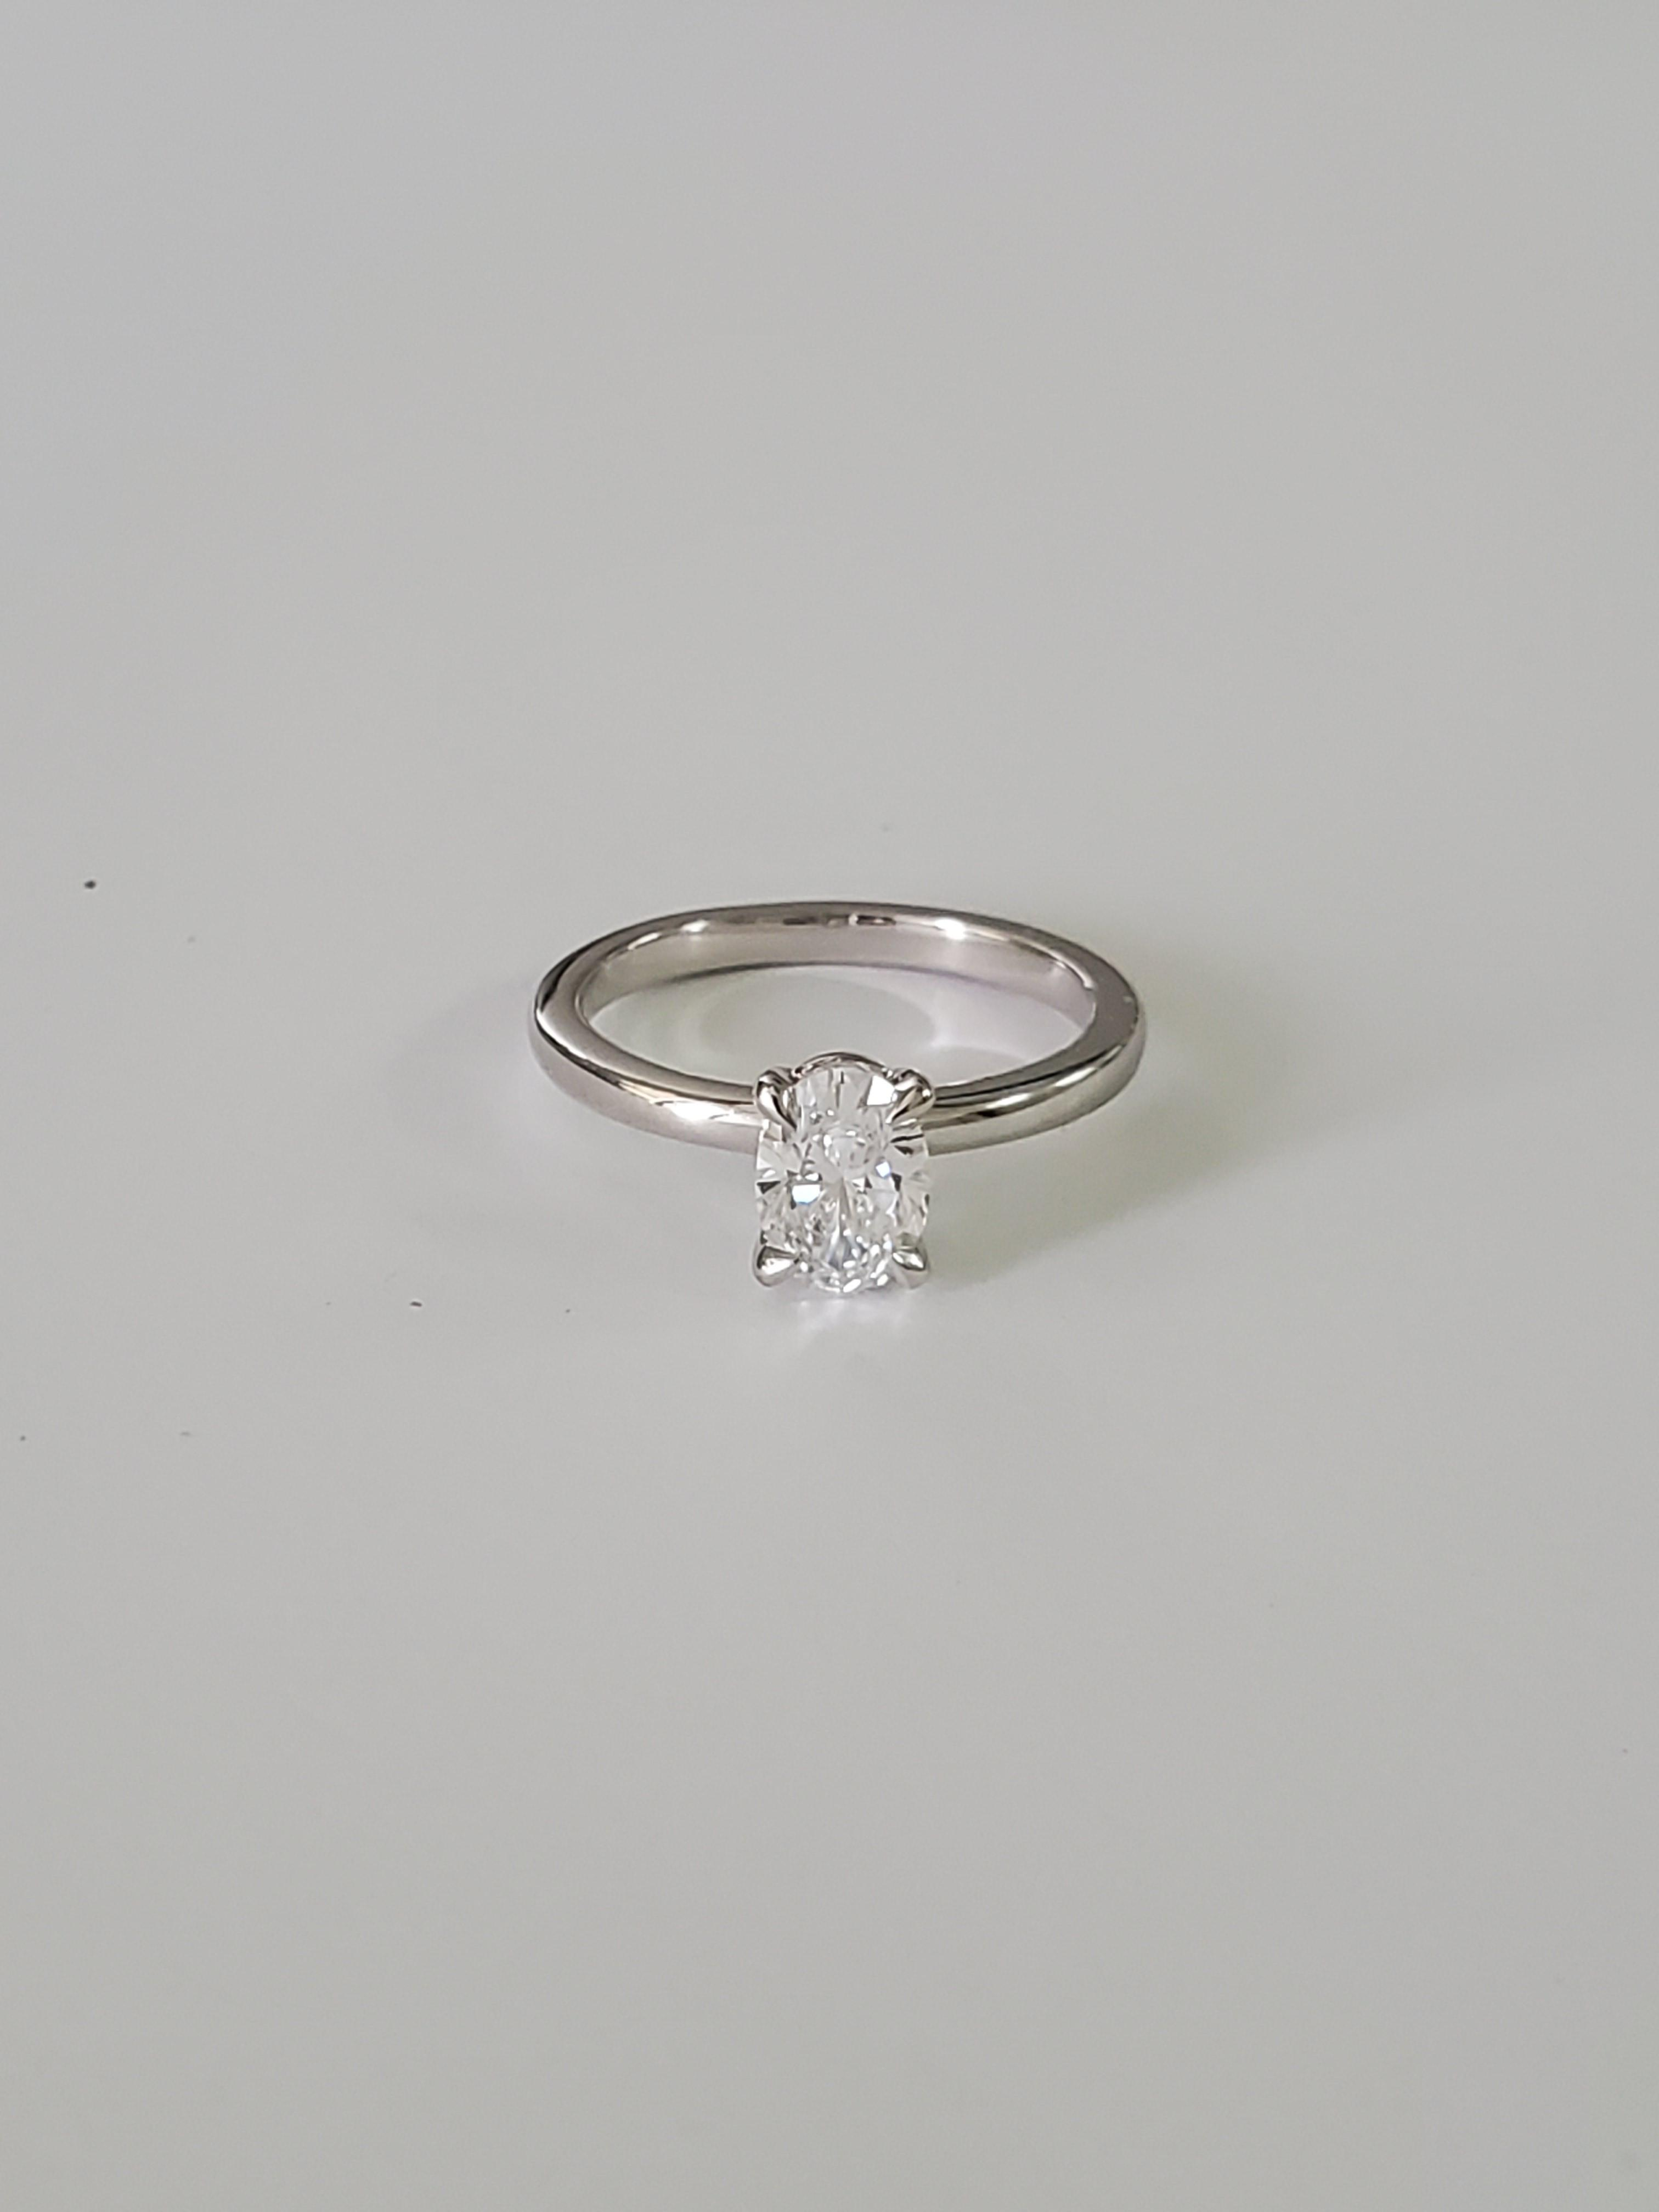 18k White gold Oval solitaire ring